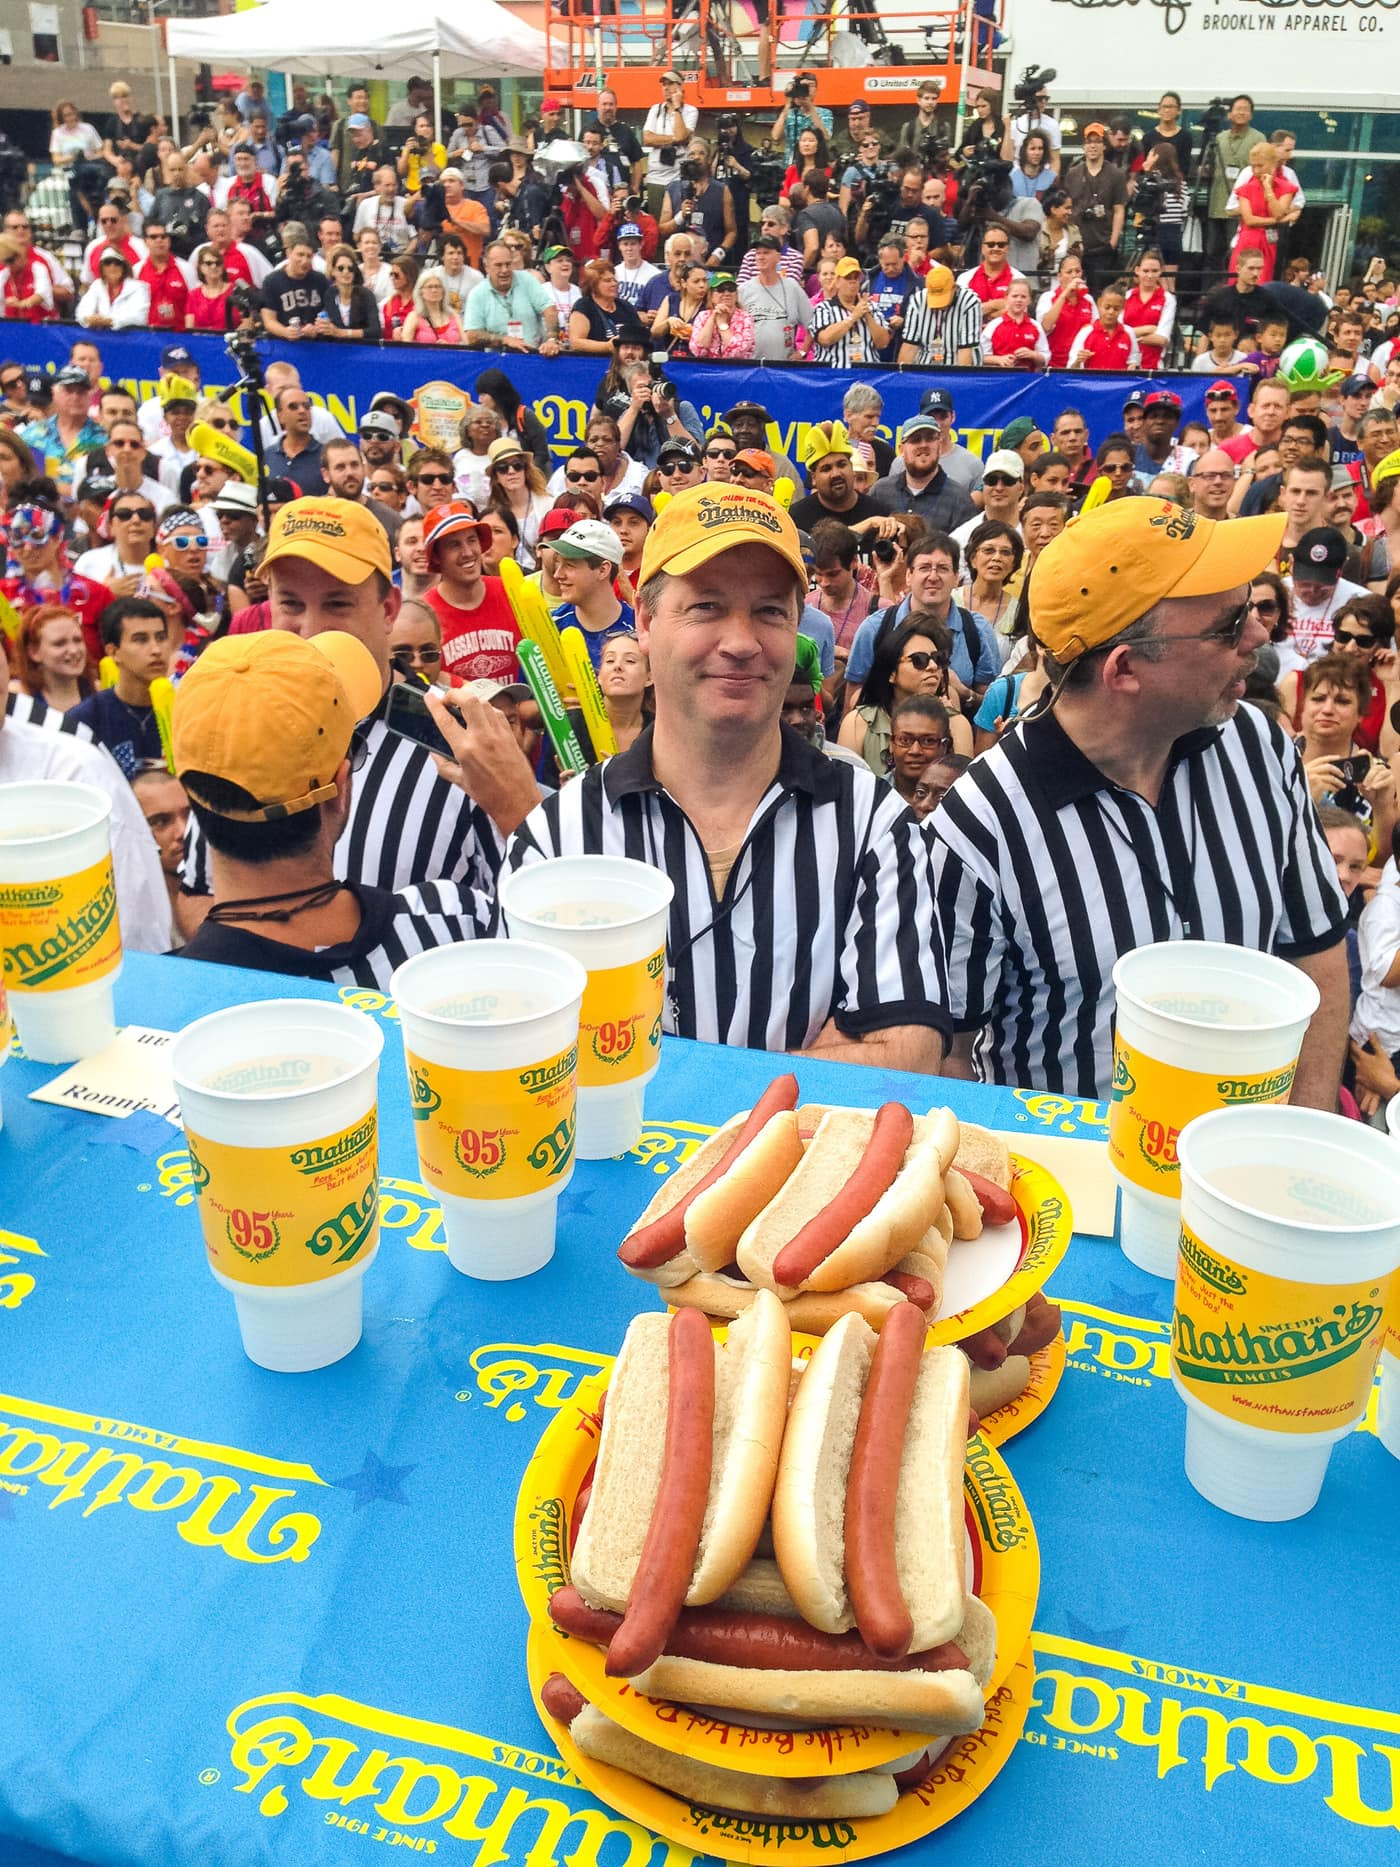 Nathan's Famous July Fourth Hot Dog Eating Contest at Coney Island.